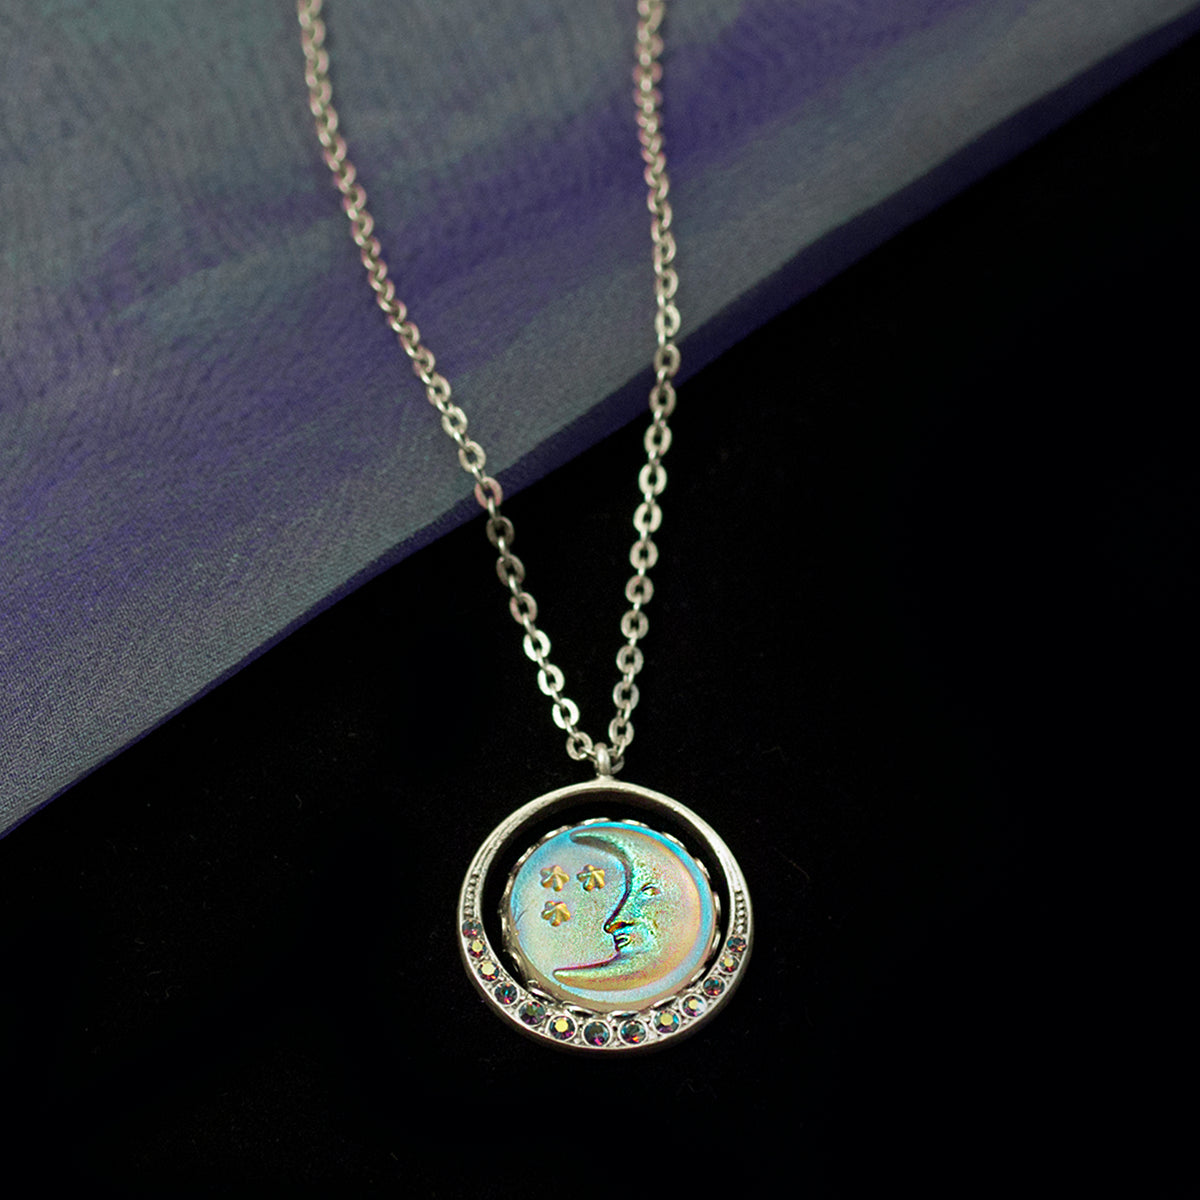 Iridescent Moon Necklace N1631 - sweetromanceonlinejewelry